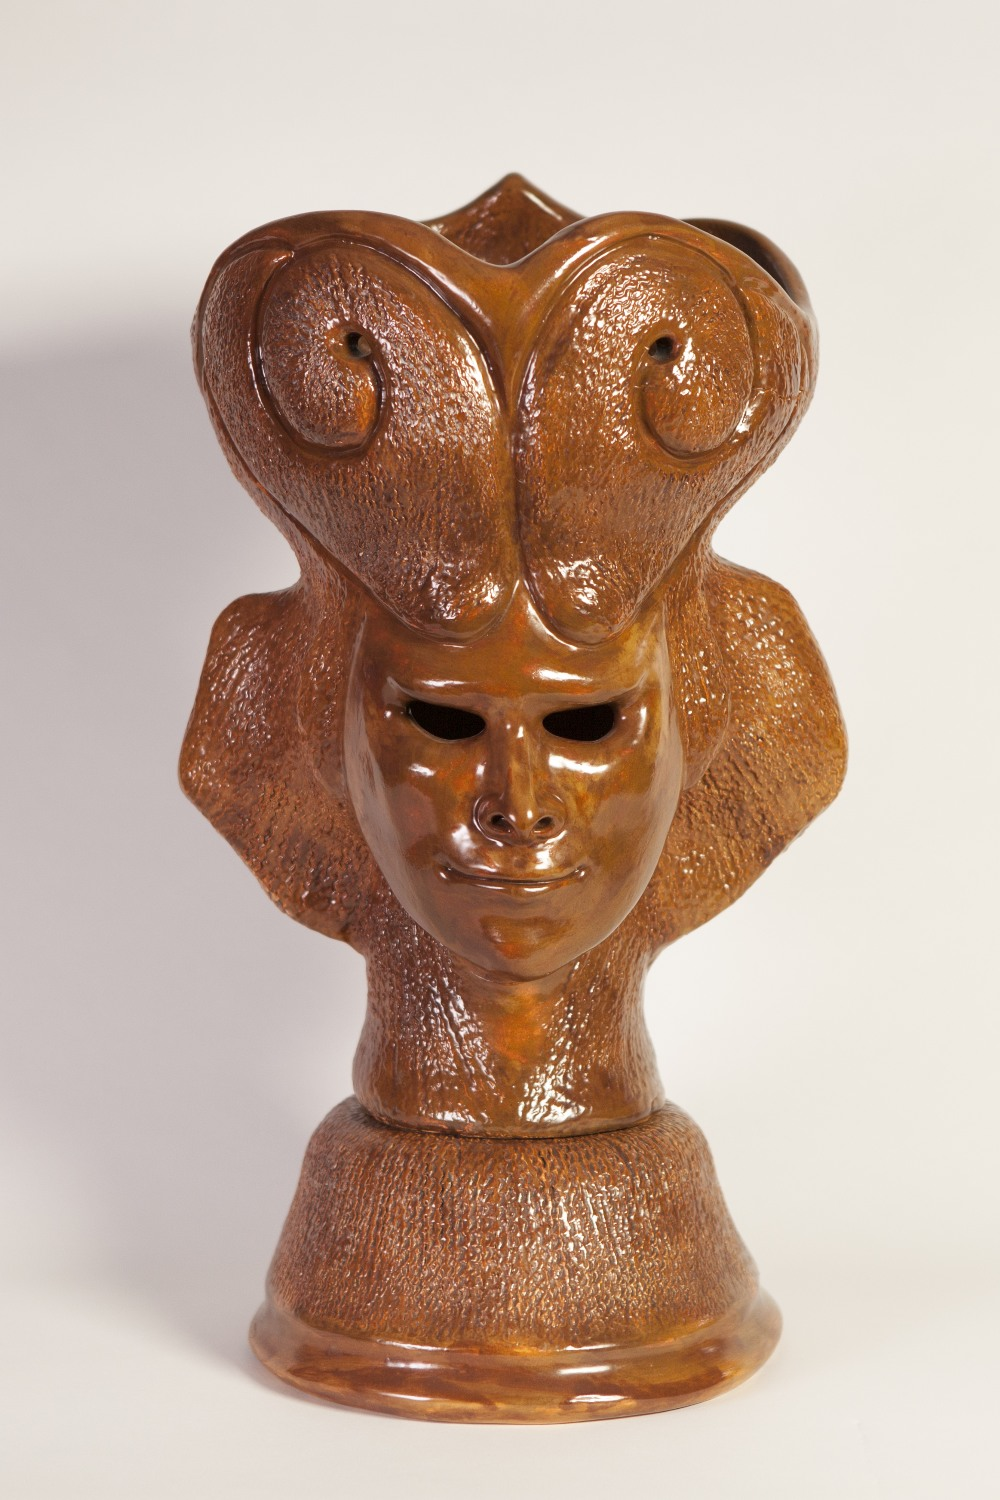 Lot 145 - GOLDA ROSE (1921 - 2016) BROWN GLAZED CLAY SCULPTURE 'Aries/Ram Pot', double sided male and female